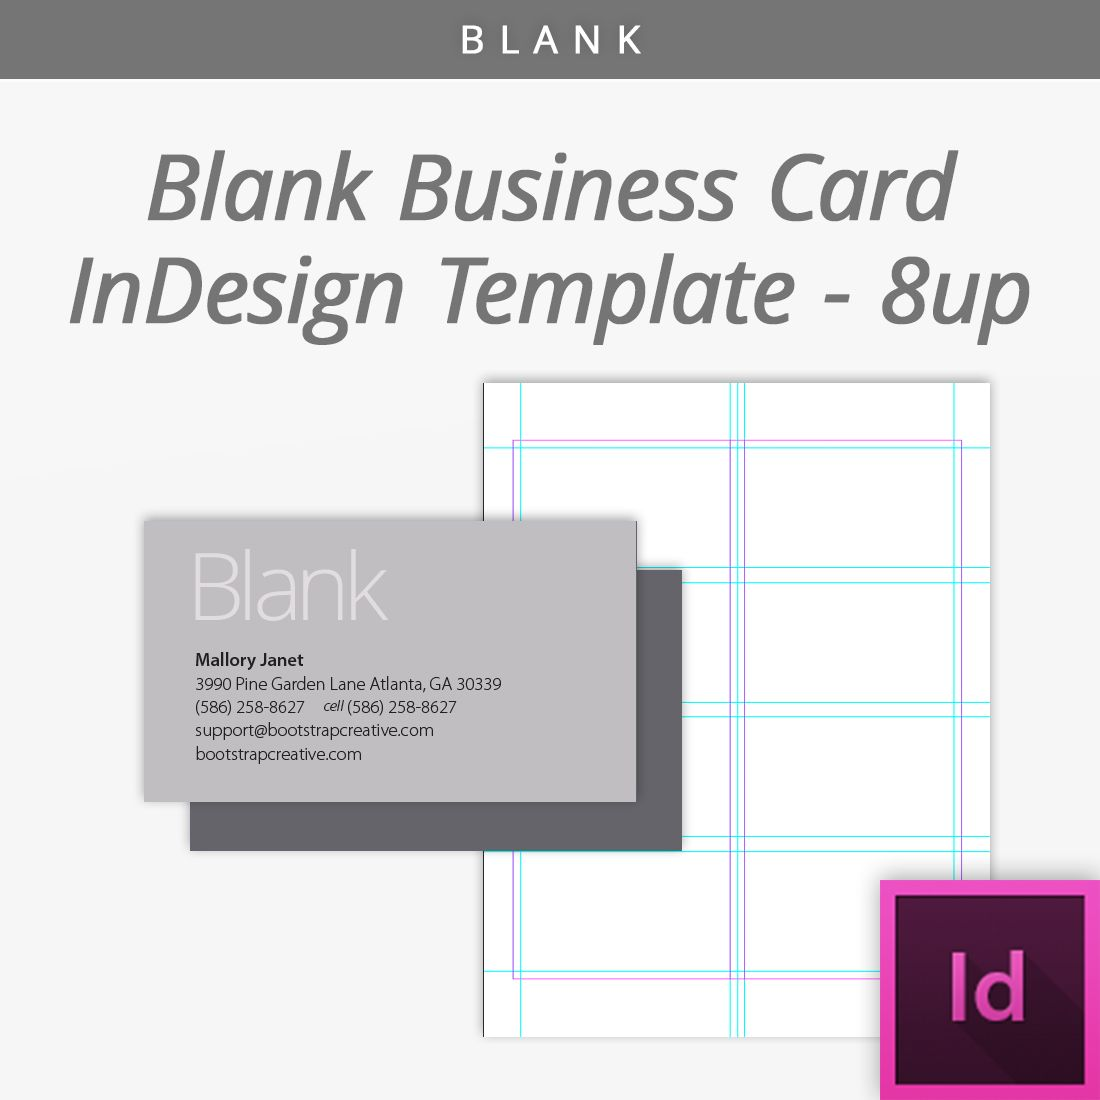 Blank Indesign Business Card Template 8 Up Free Designtemplate